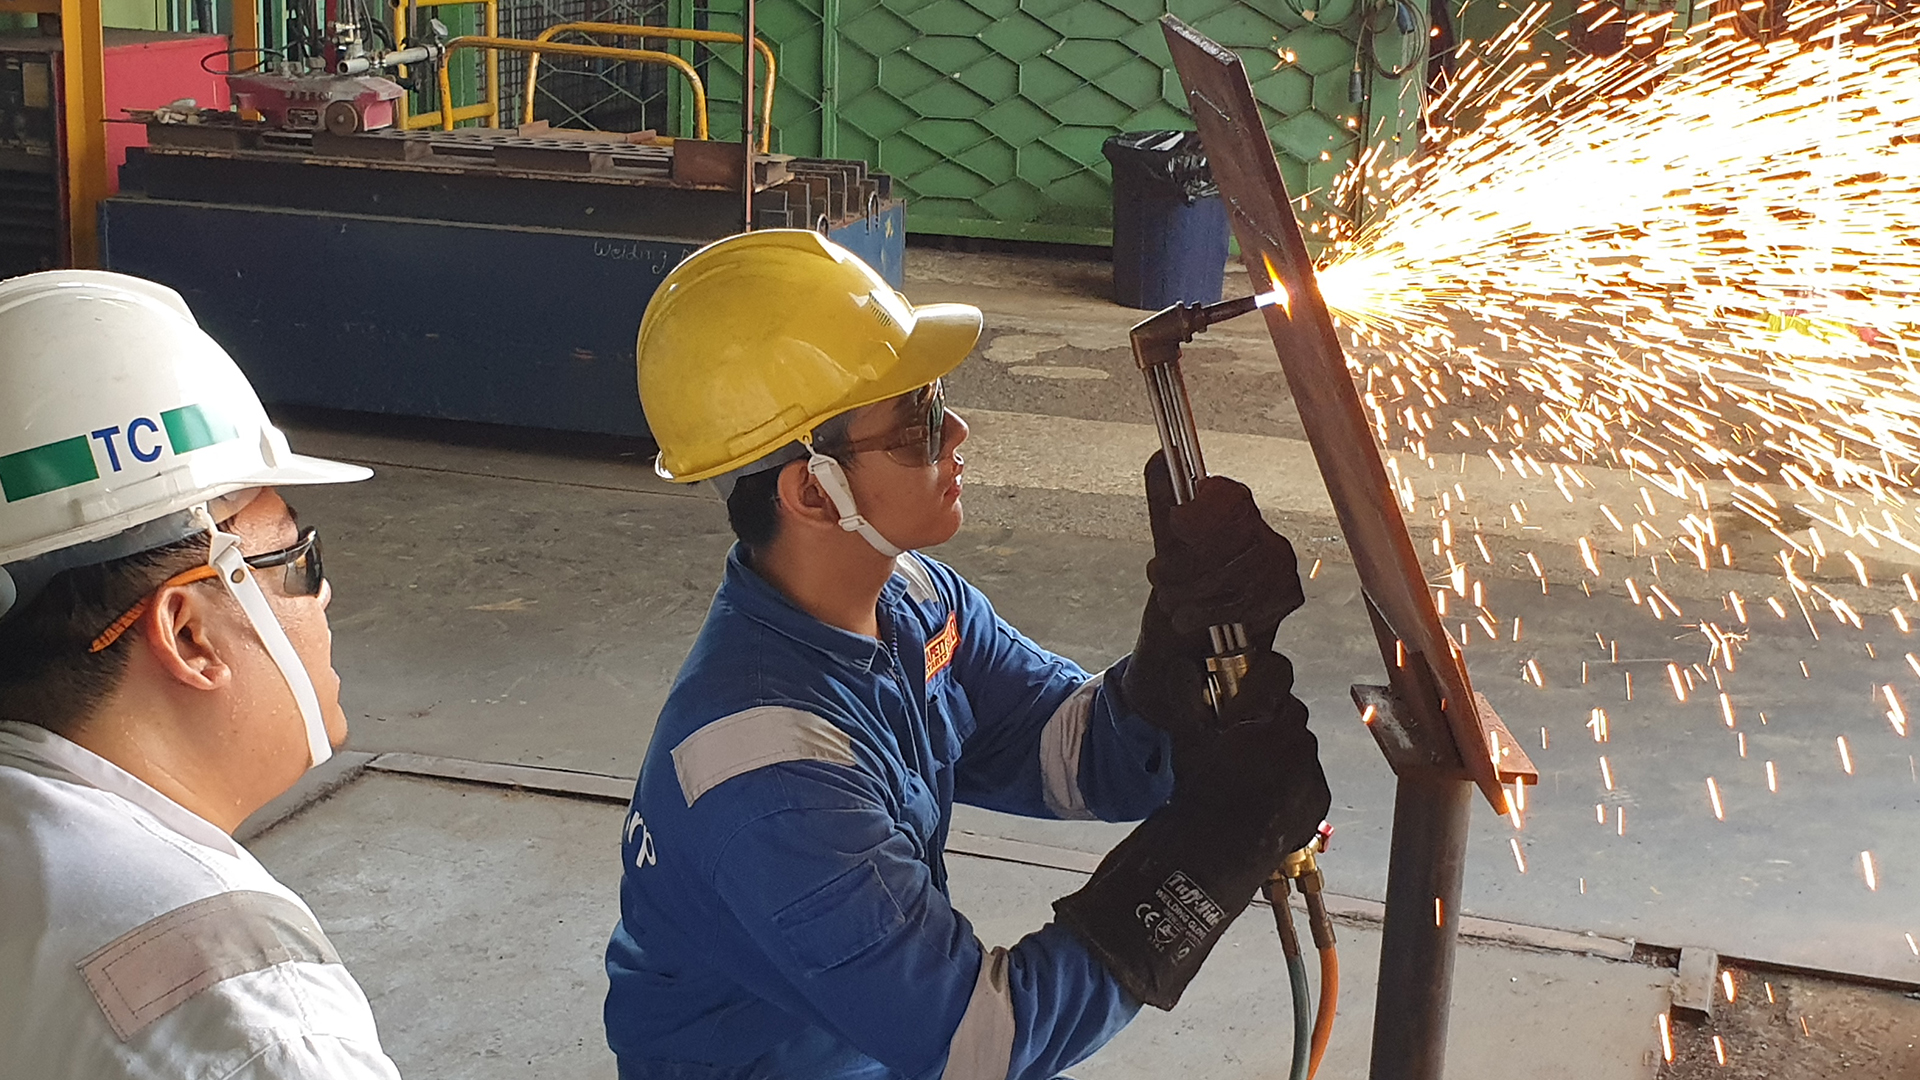 Banner Nitec in Fabrication Technology Marine Pipe